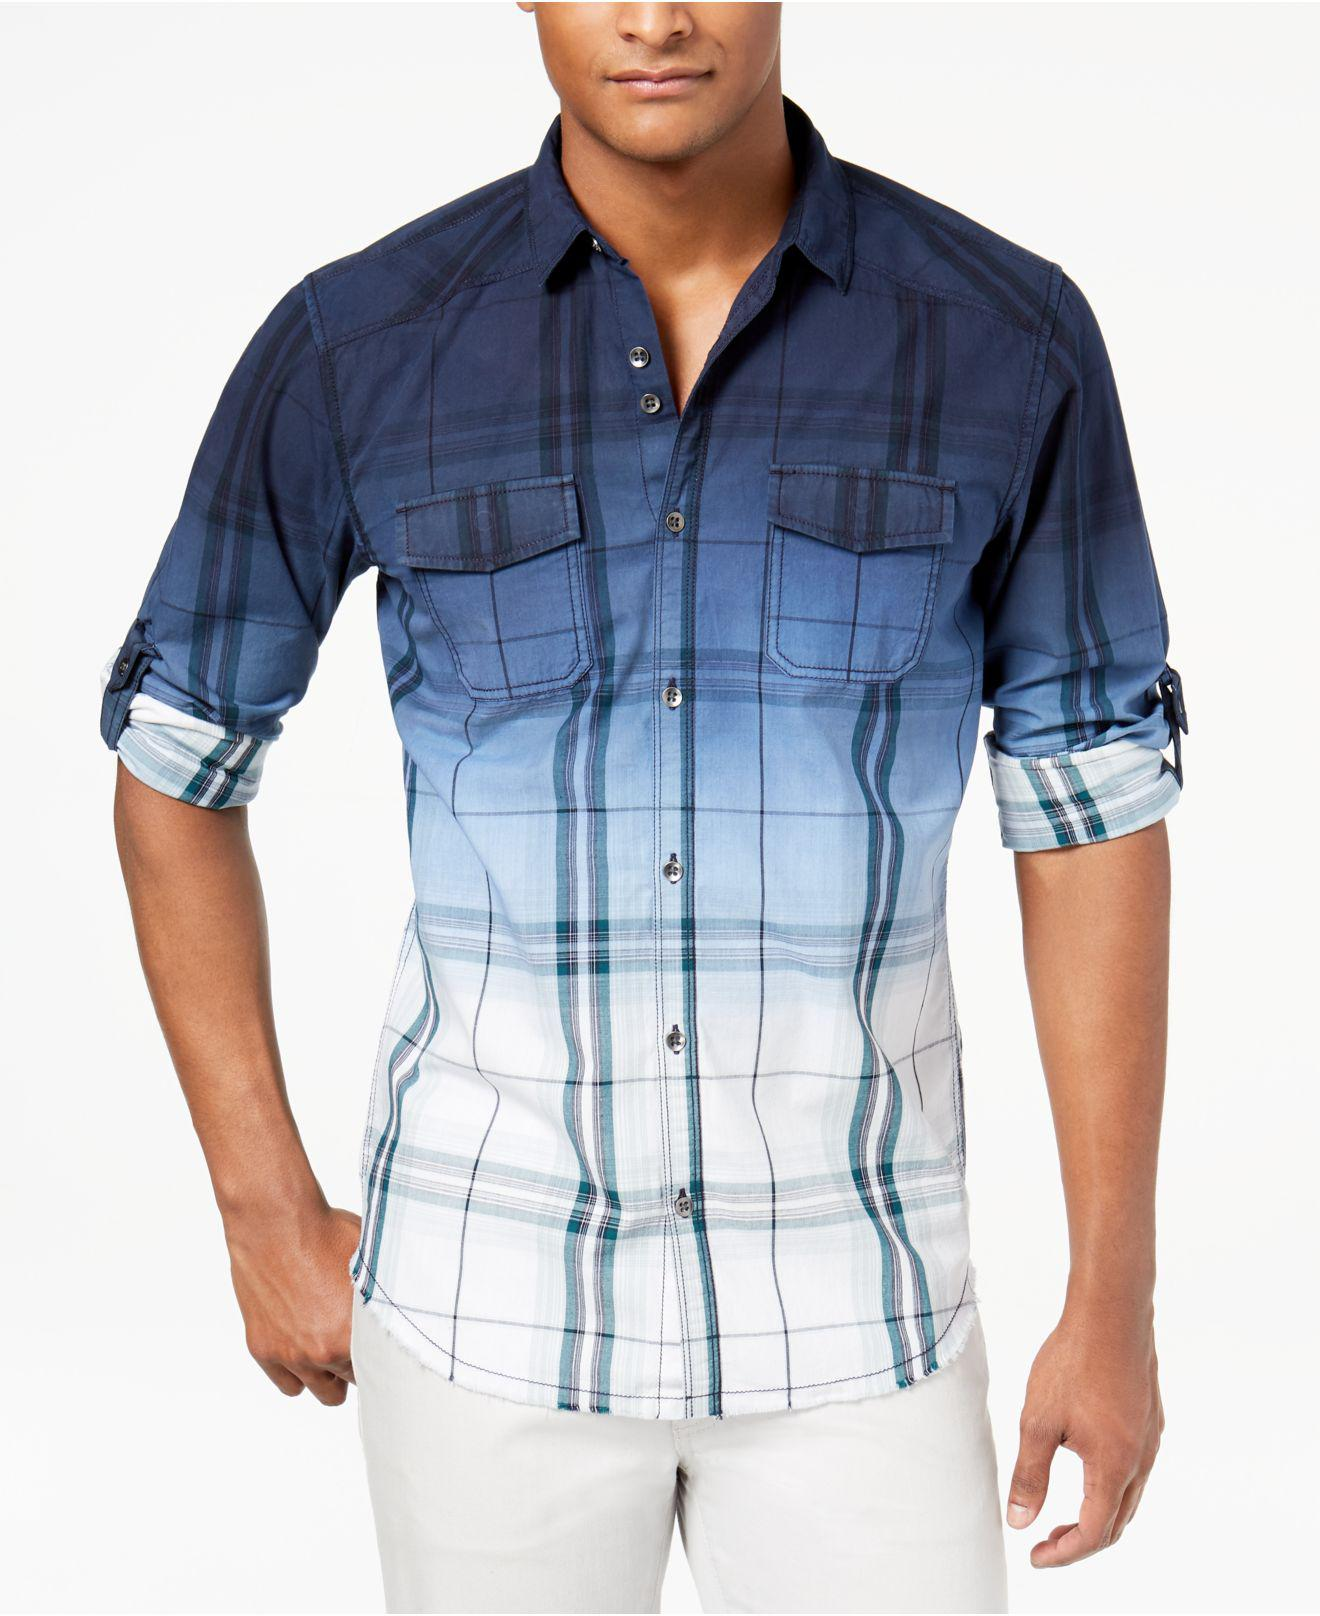 Lyst - INC International Concepts Men s Dip-dyed Plaid Shirt in Blue ... a4c43b515